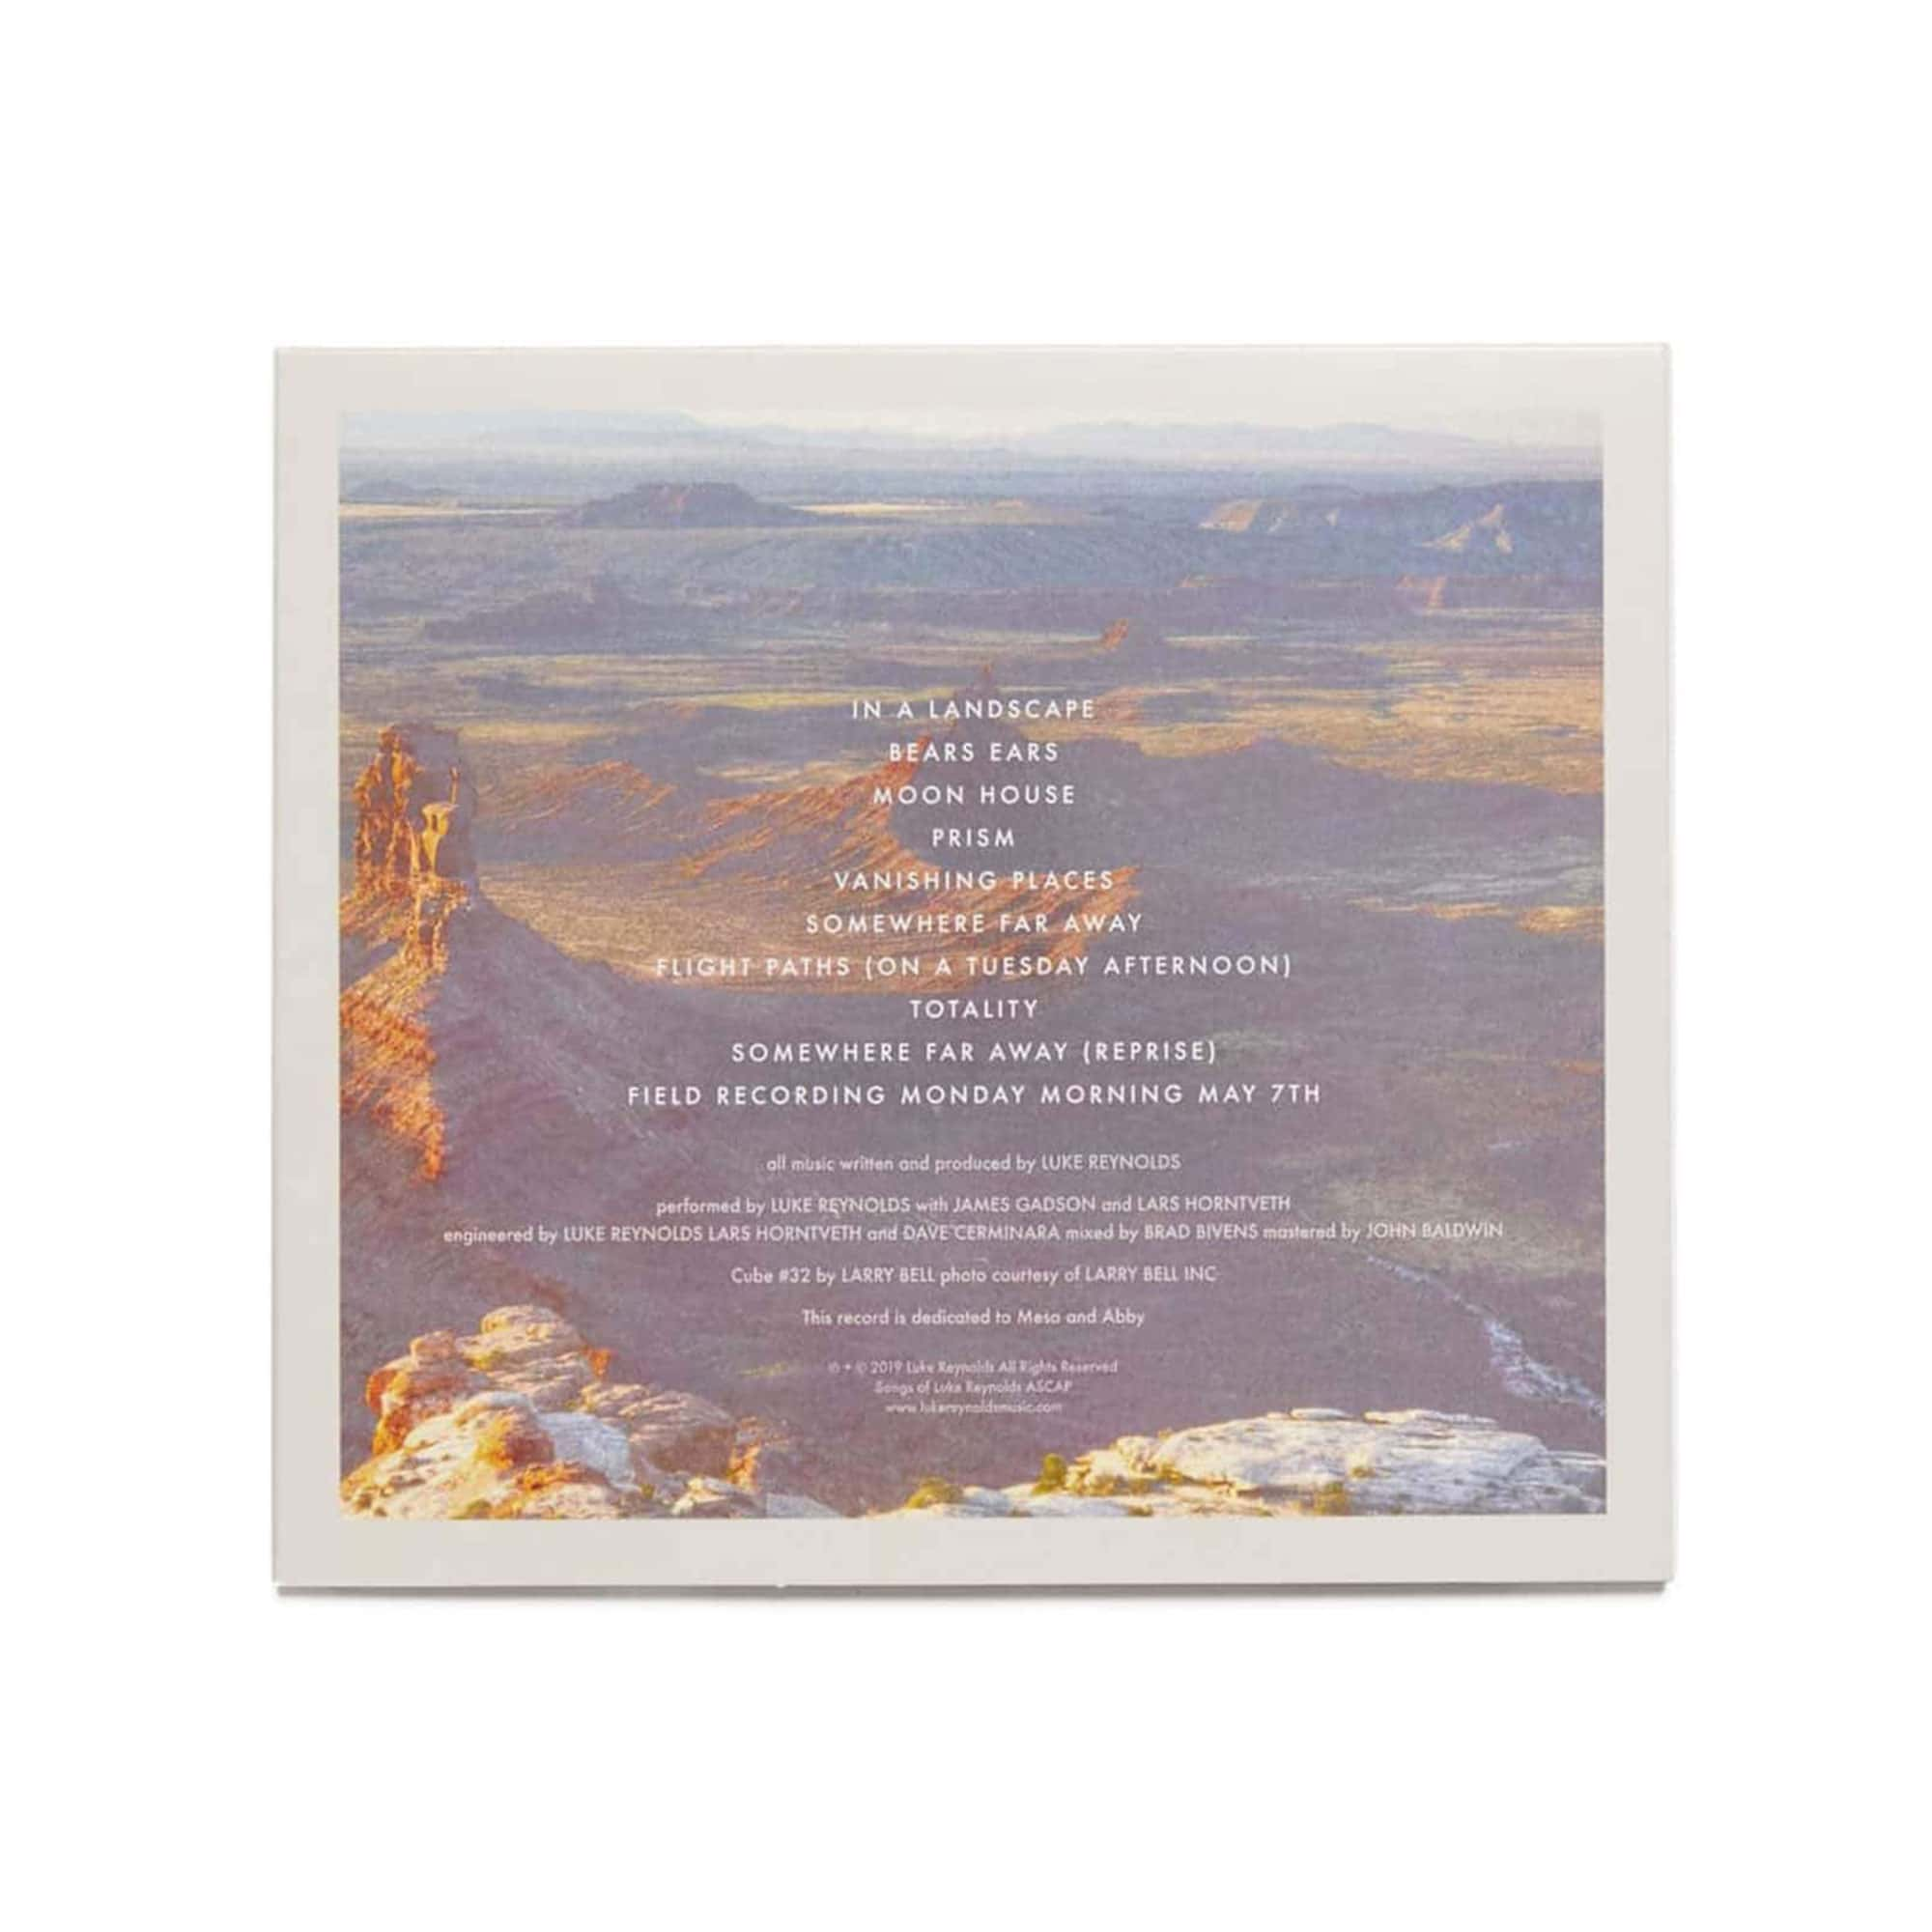 Luke Reynolds 'Vanishing Places Vol 1: Bears Ears' 12